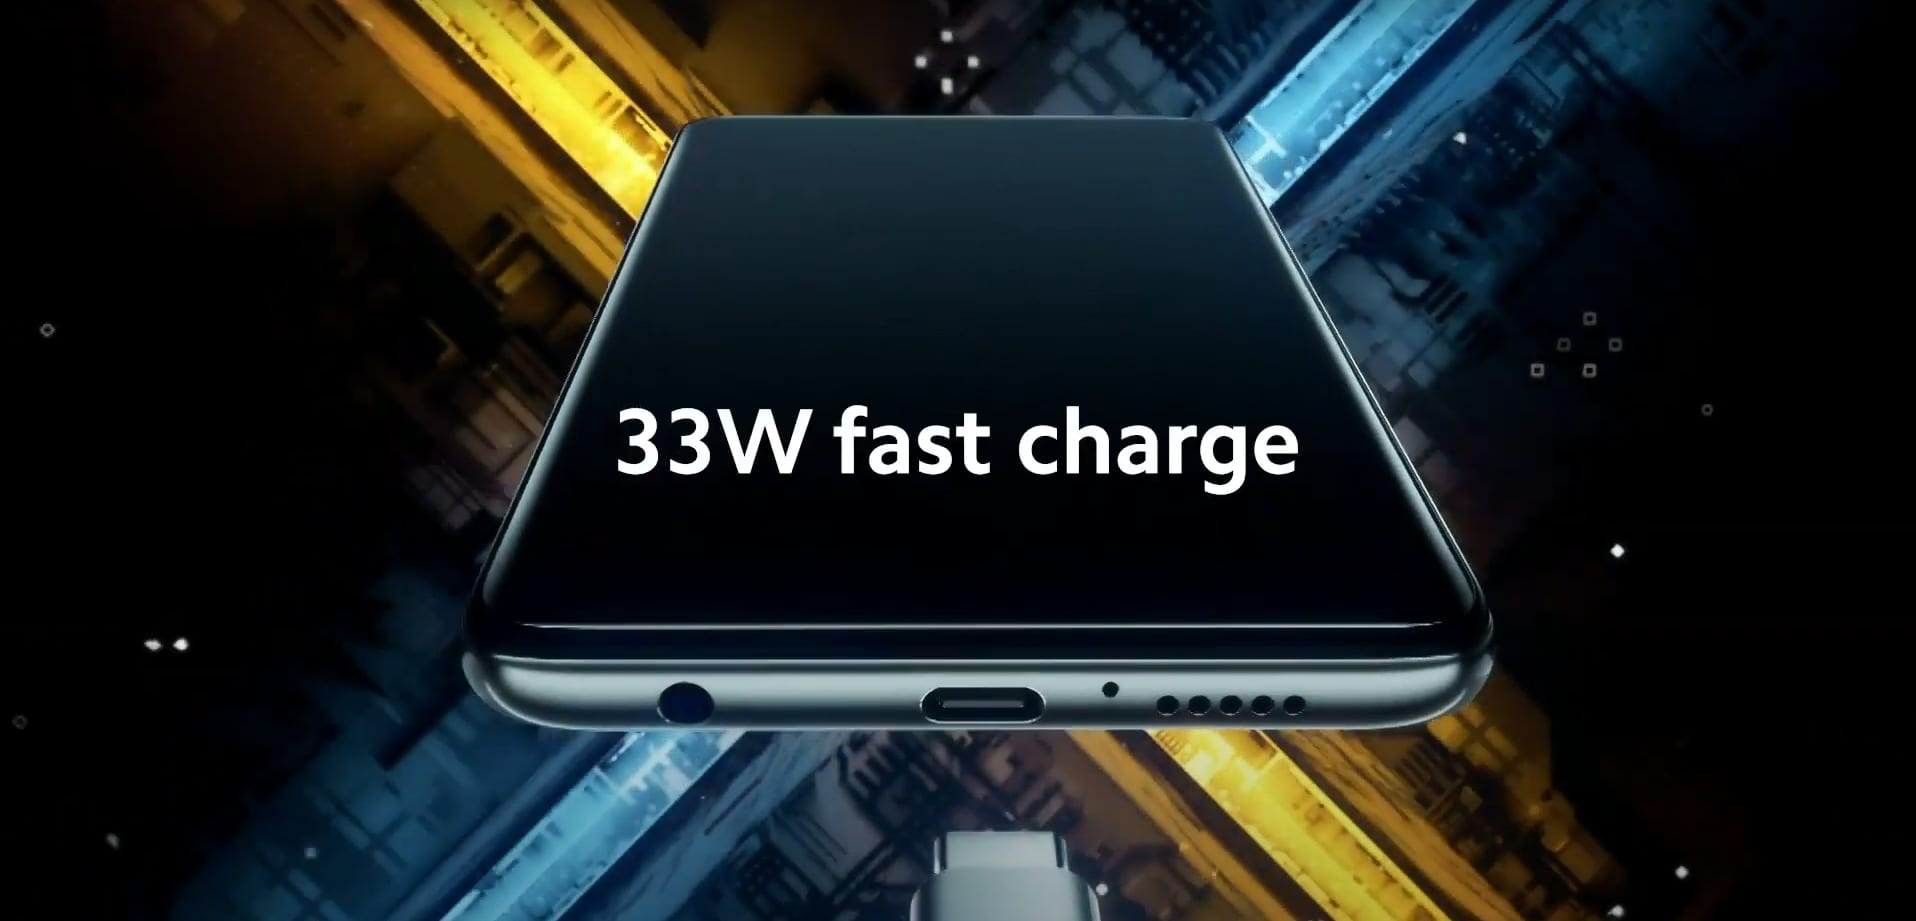 33W fast charge on the POCO X3